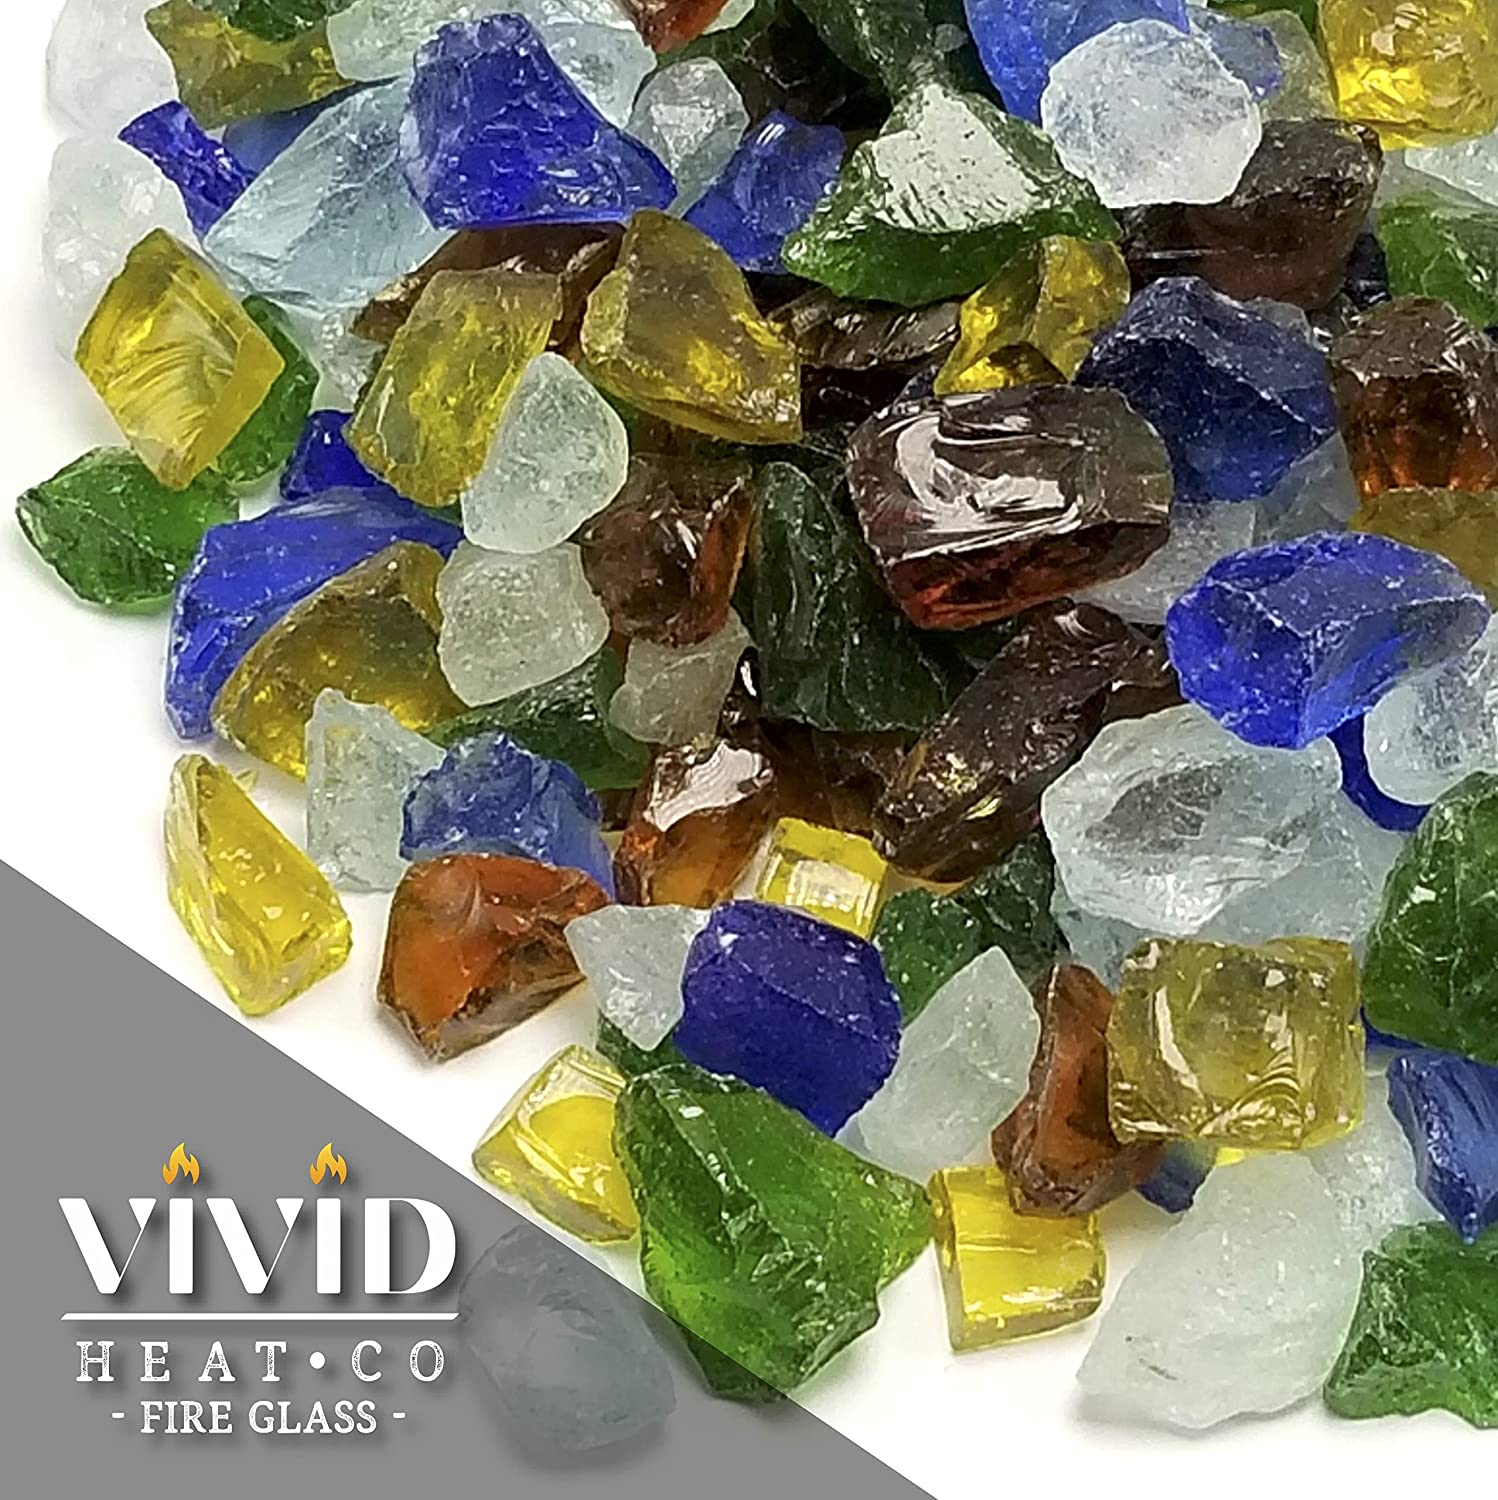 5-Pound Large 1//2 3//4 /& 1 inch Size VIVID Heat Emerald Green Premium Outdoor Crushed Fire Glass Rock Fire Table Etc. Fireplace Glass use in Gas Fire Pit